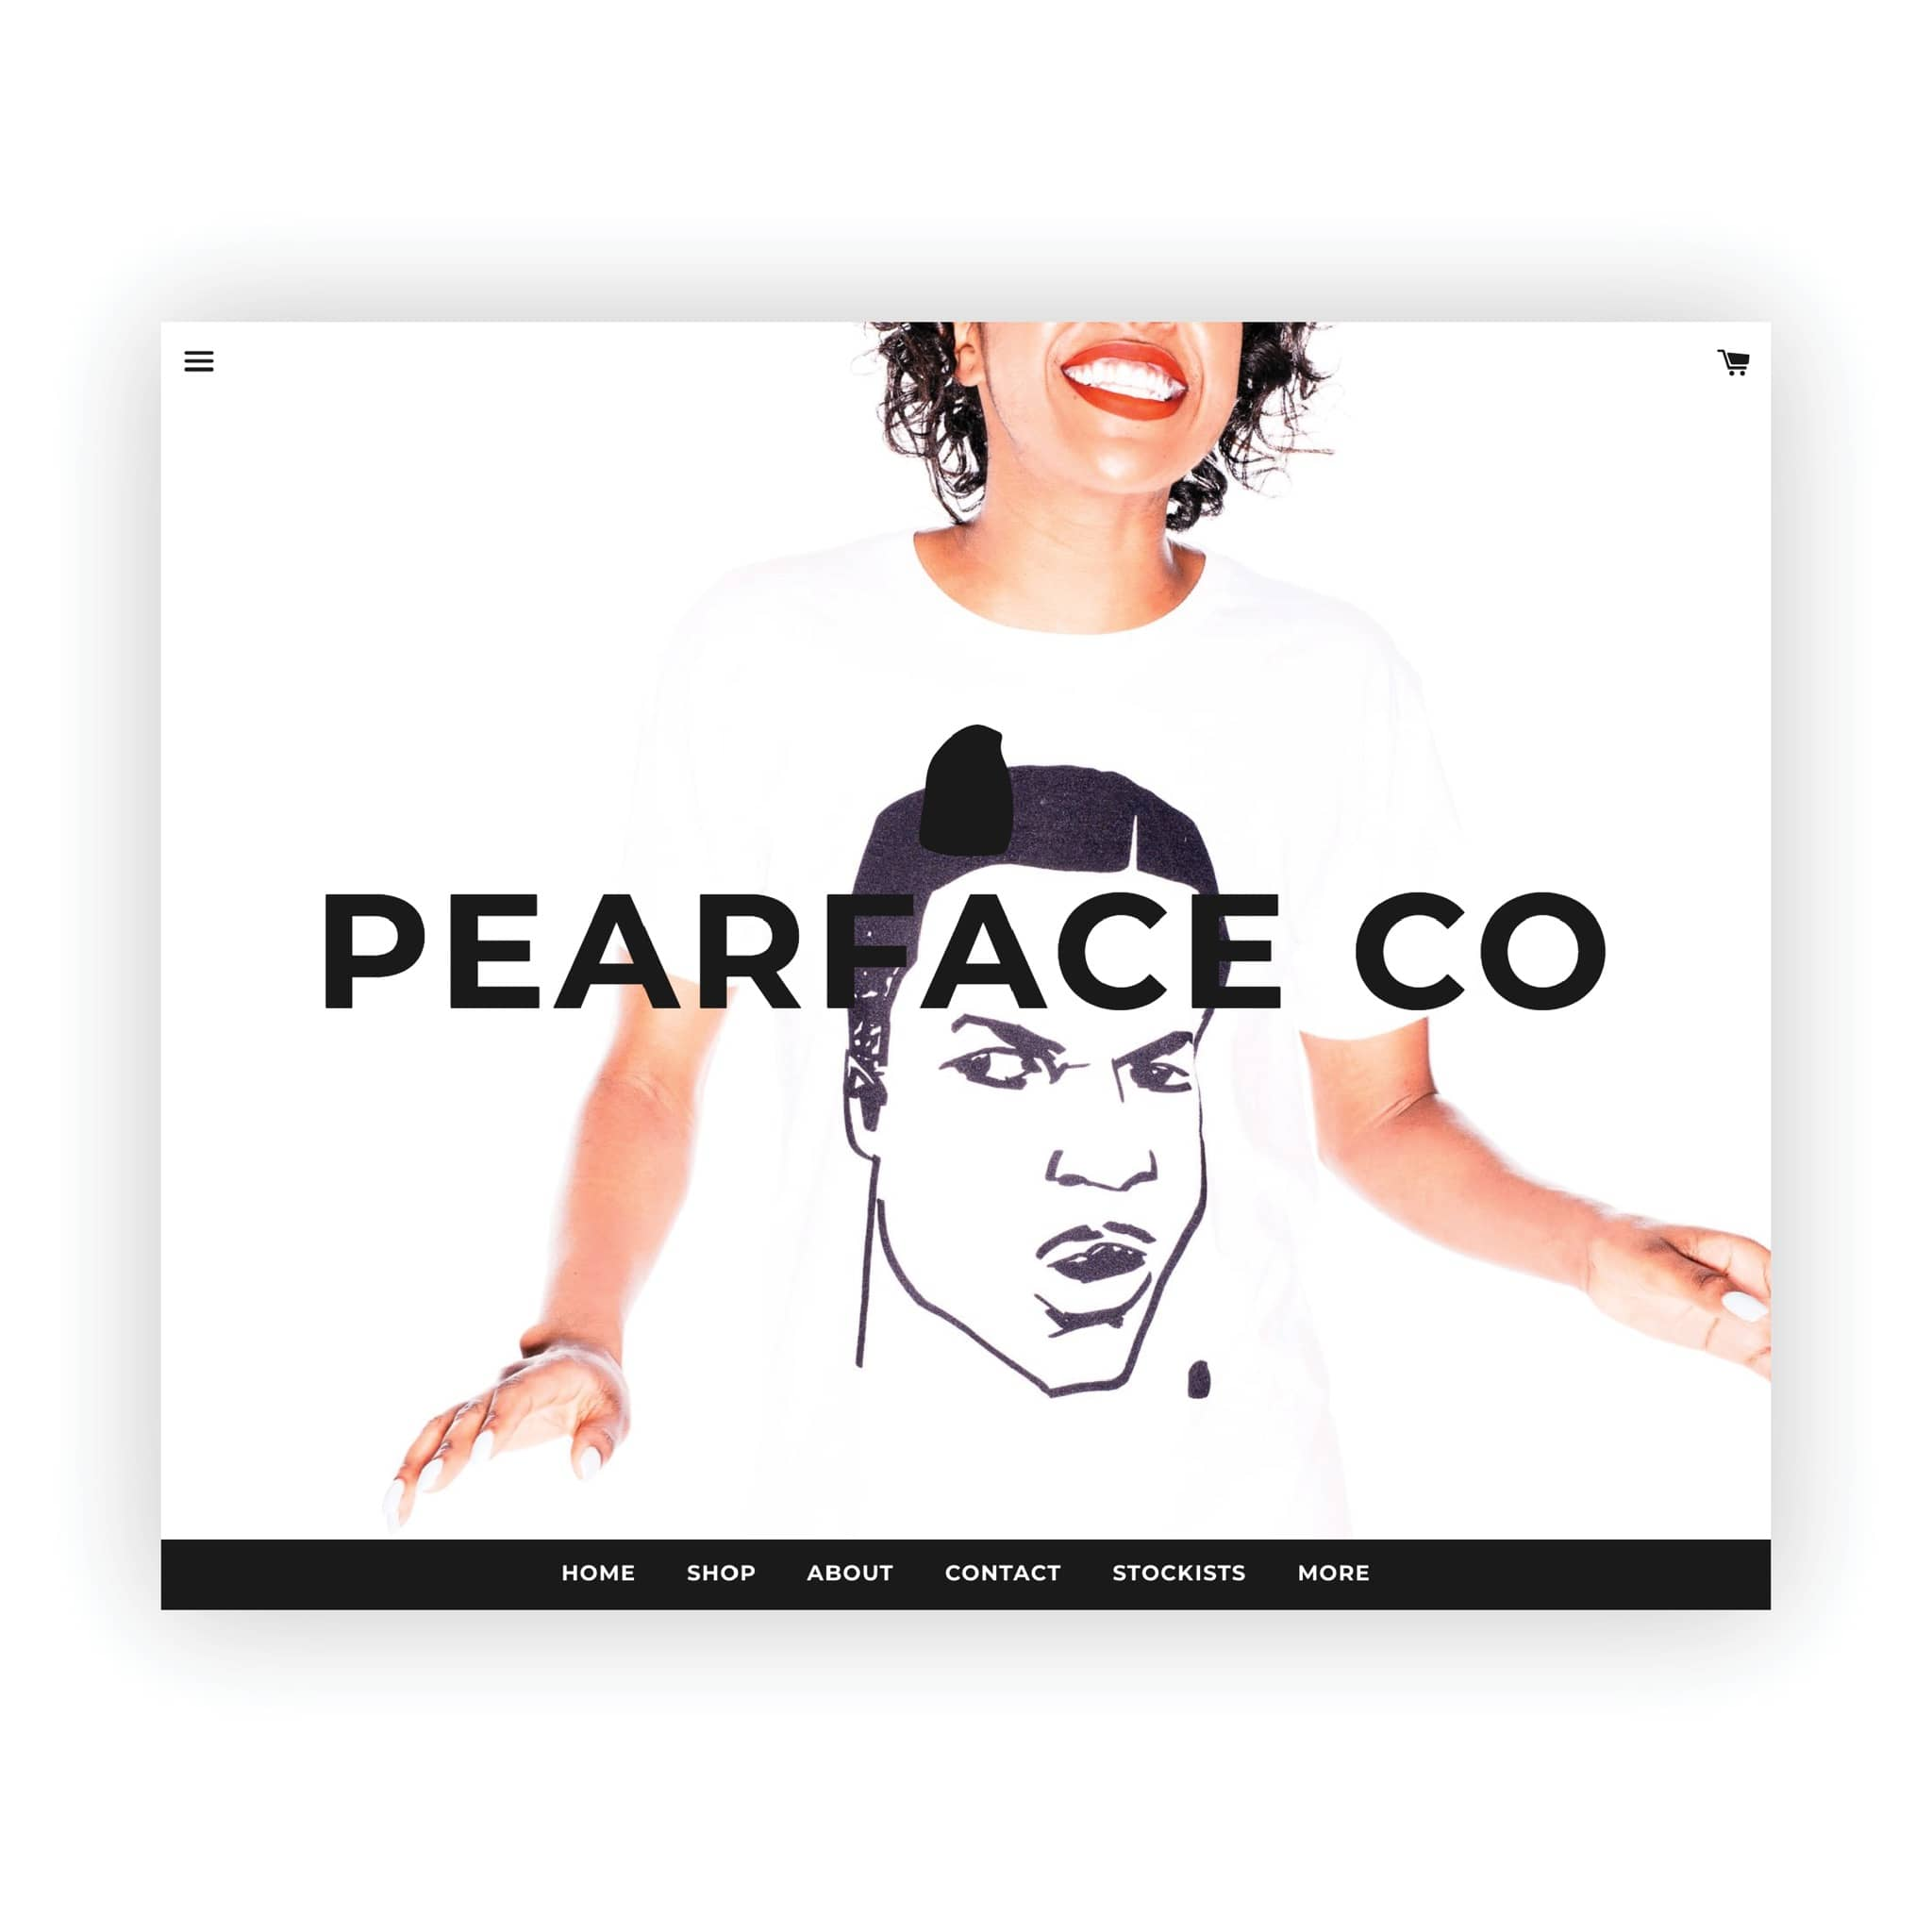 Pearface Co - website desgin by Brand Engine